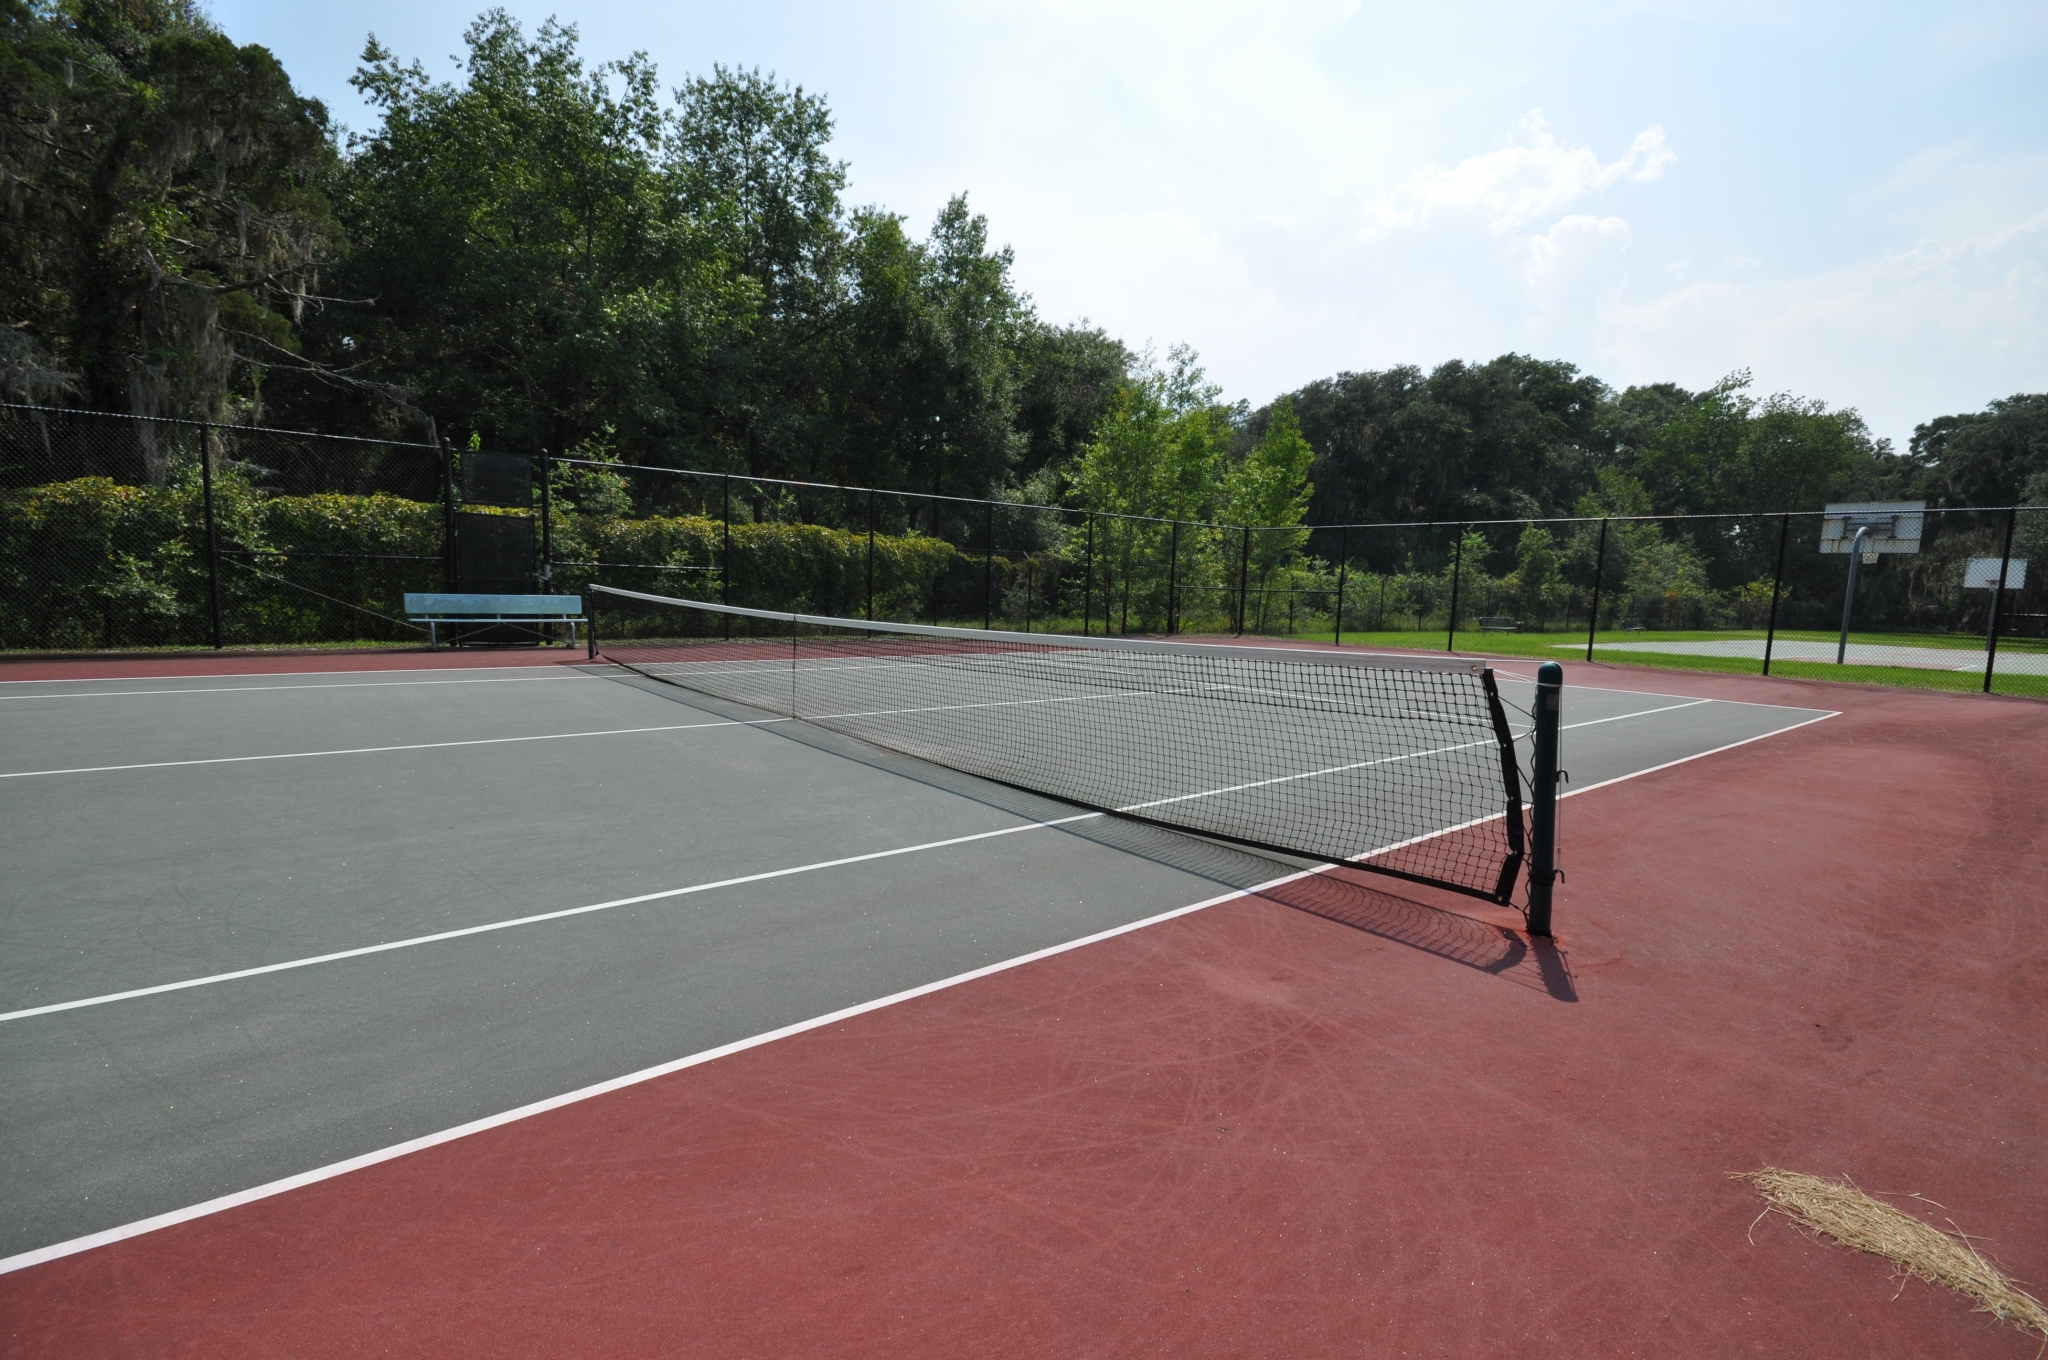 Tennis Court | Exterior Tennis Court | Outside Court | Naval Hospital Beaufort Sports |